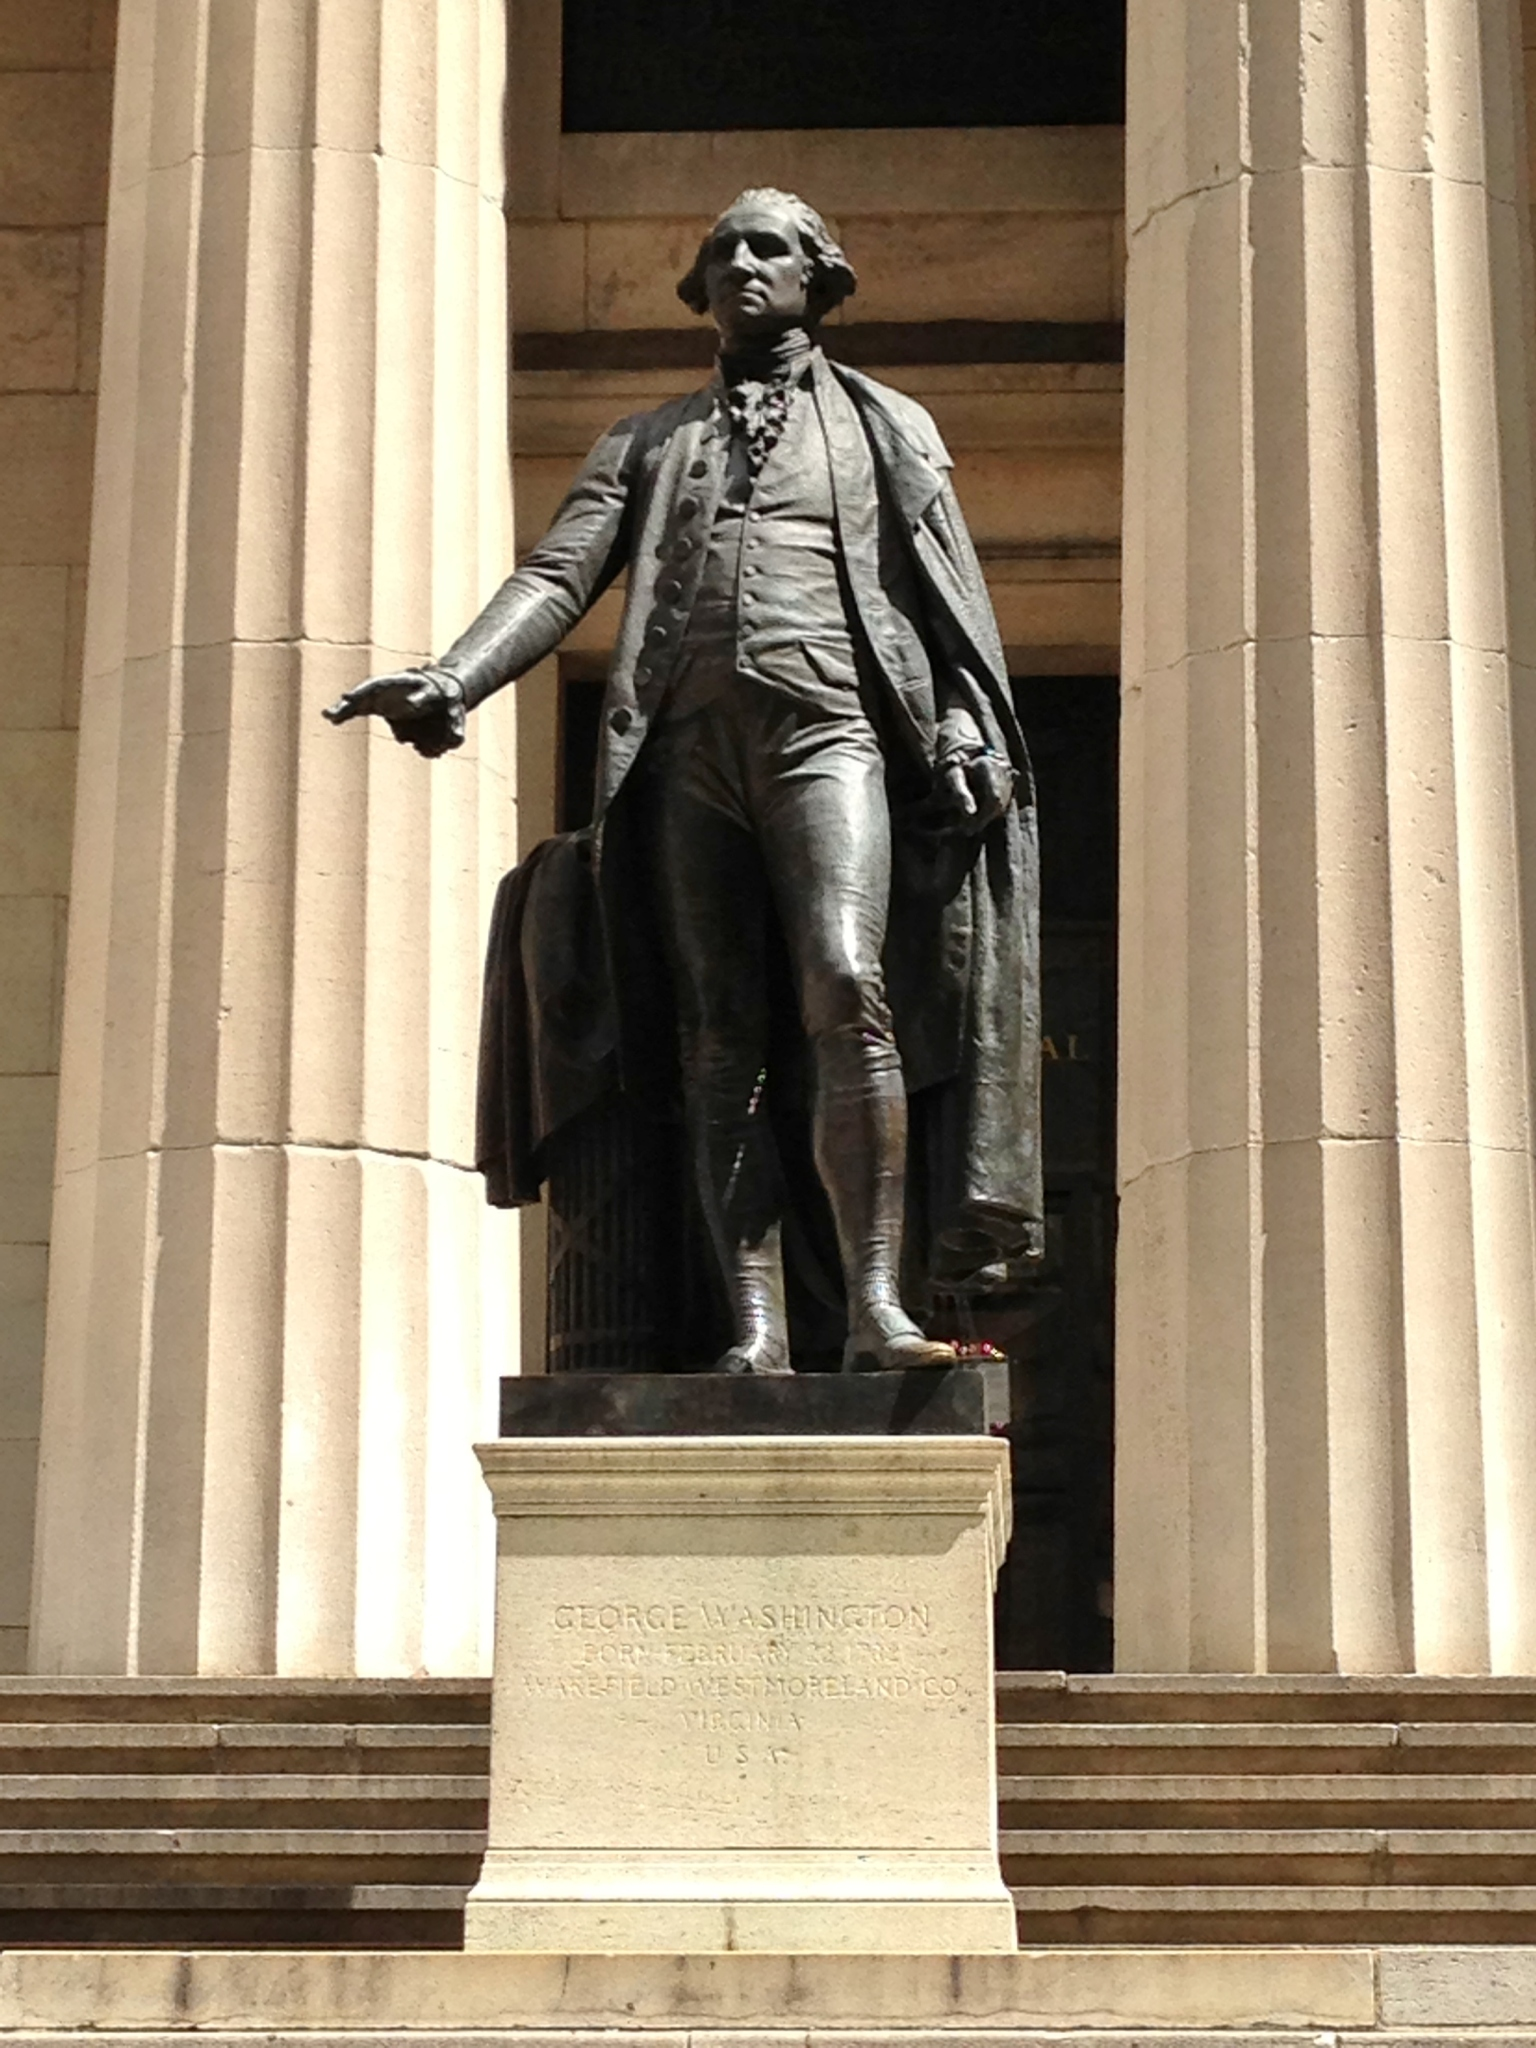 statue of George Washington in Manhattan